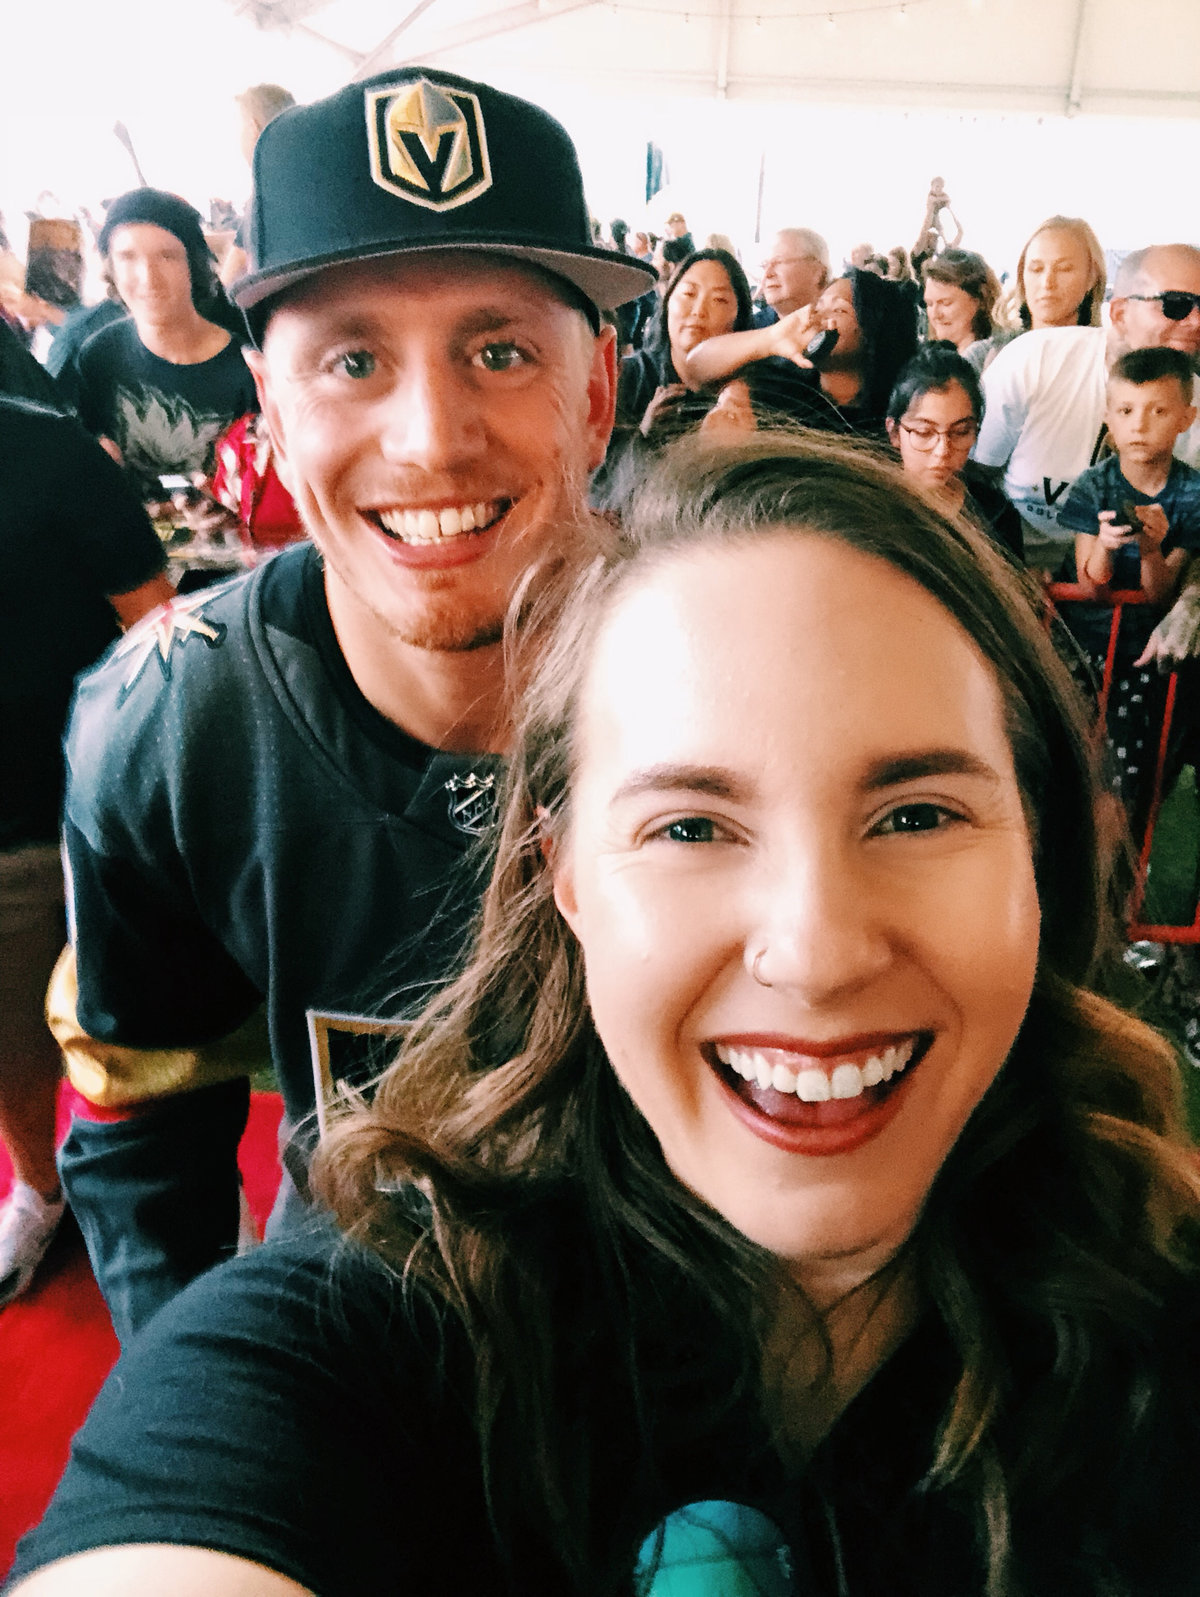 Fan poses with Nate Schmidt of the Vegas Golden Knights